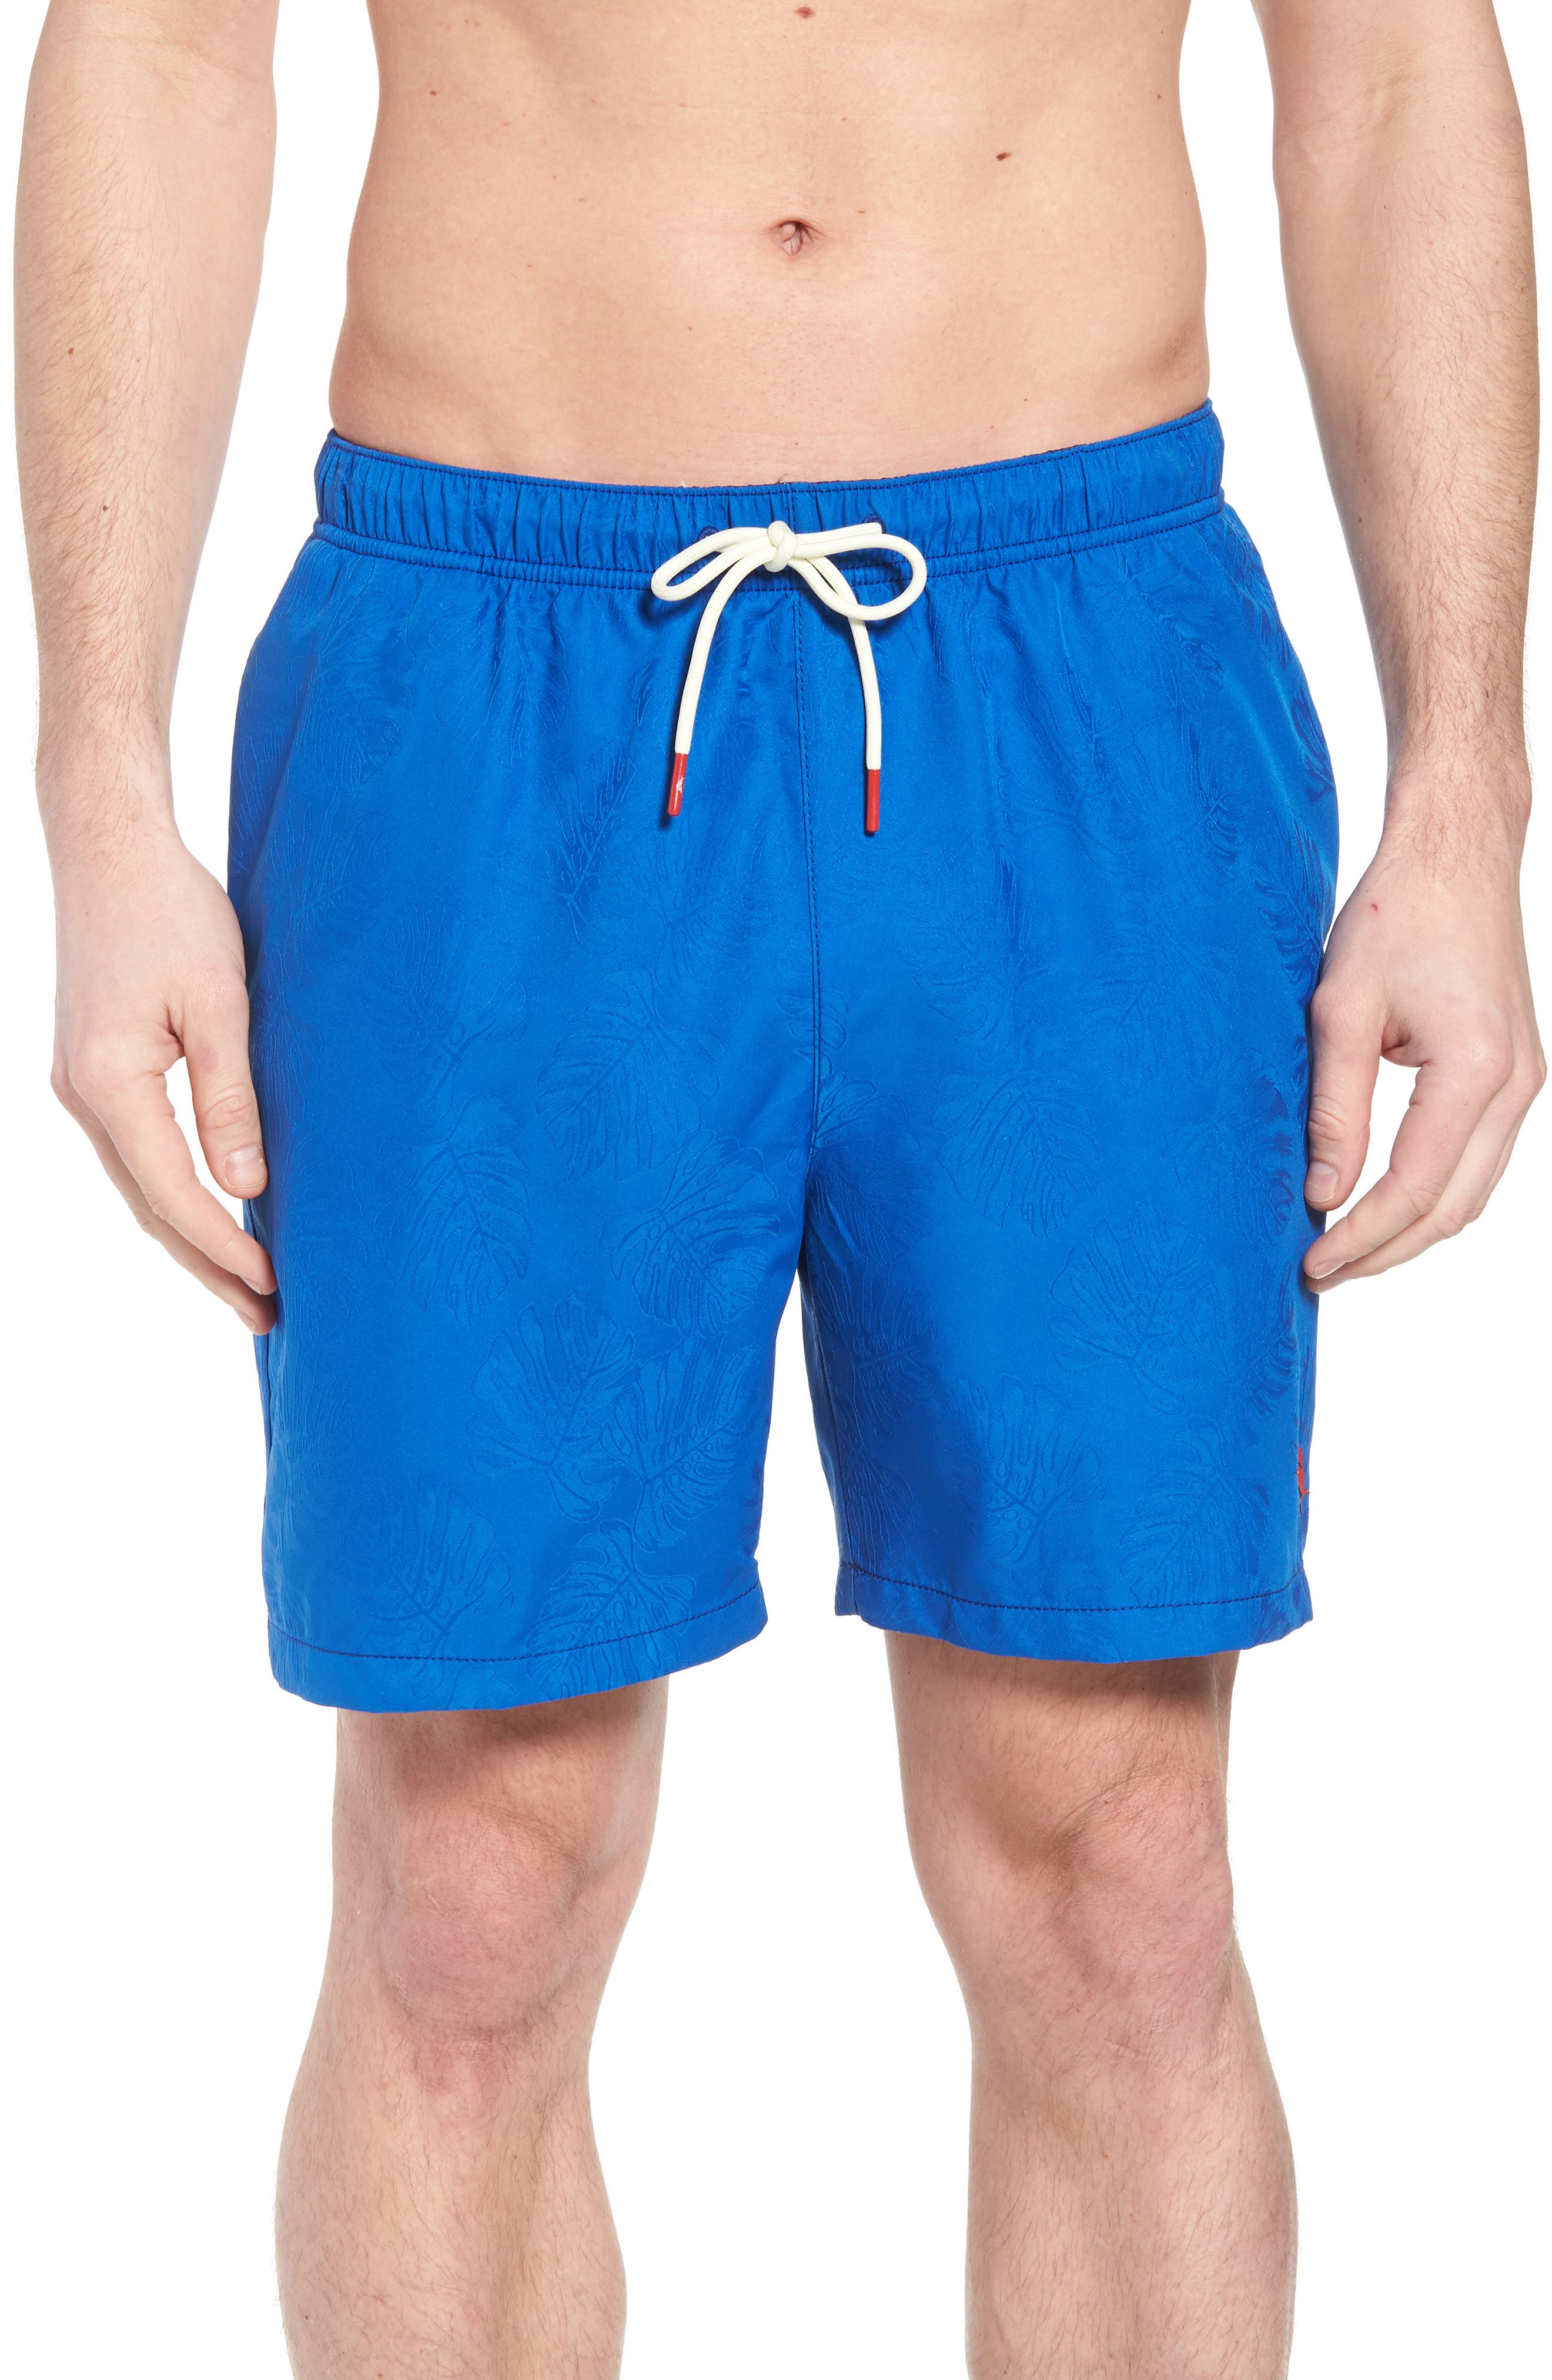 Naples Midnight Monstera Swim Trunks,                         Main,                         color, Cobalt Sea